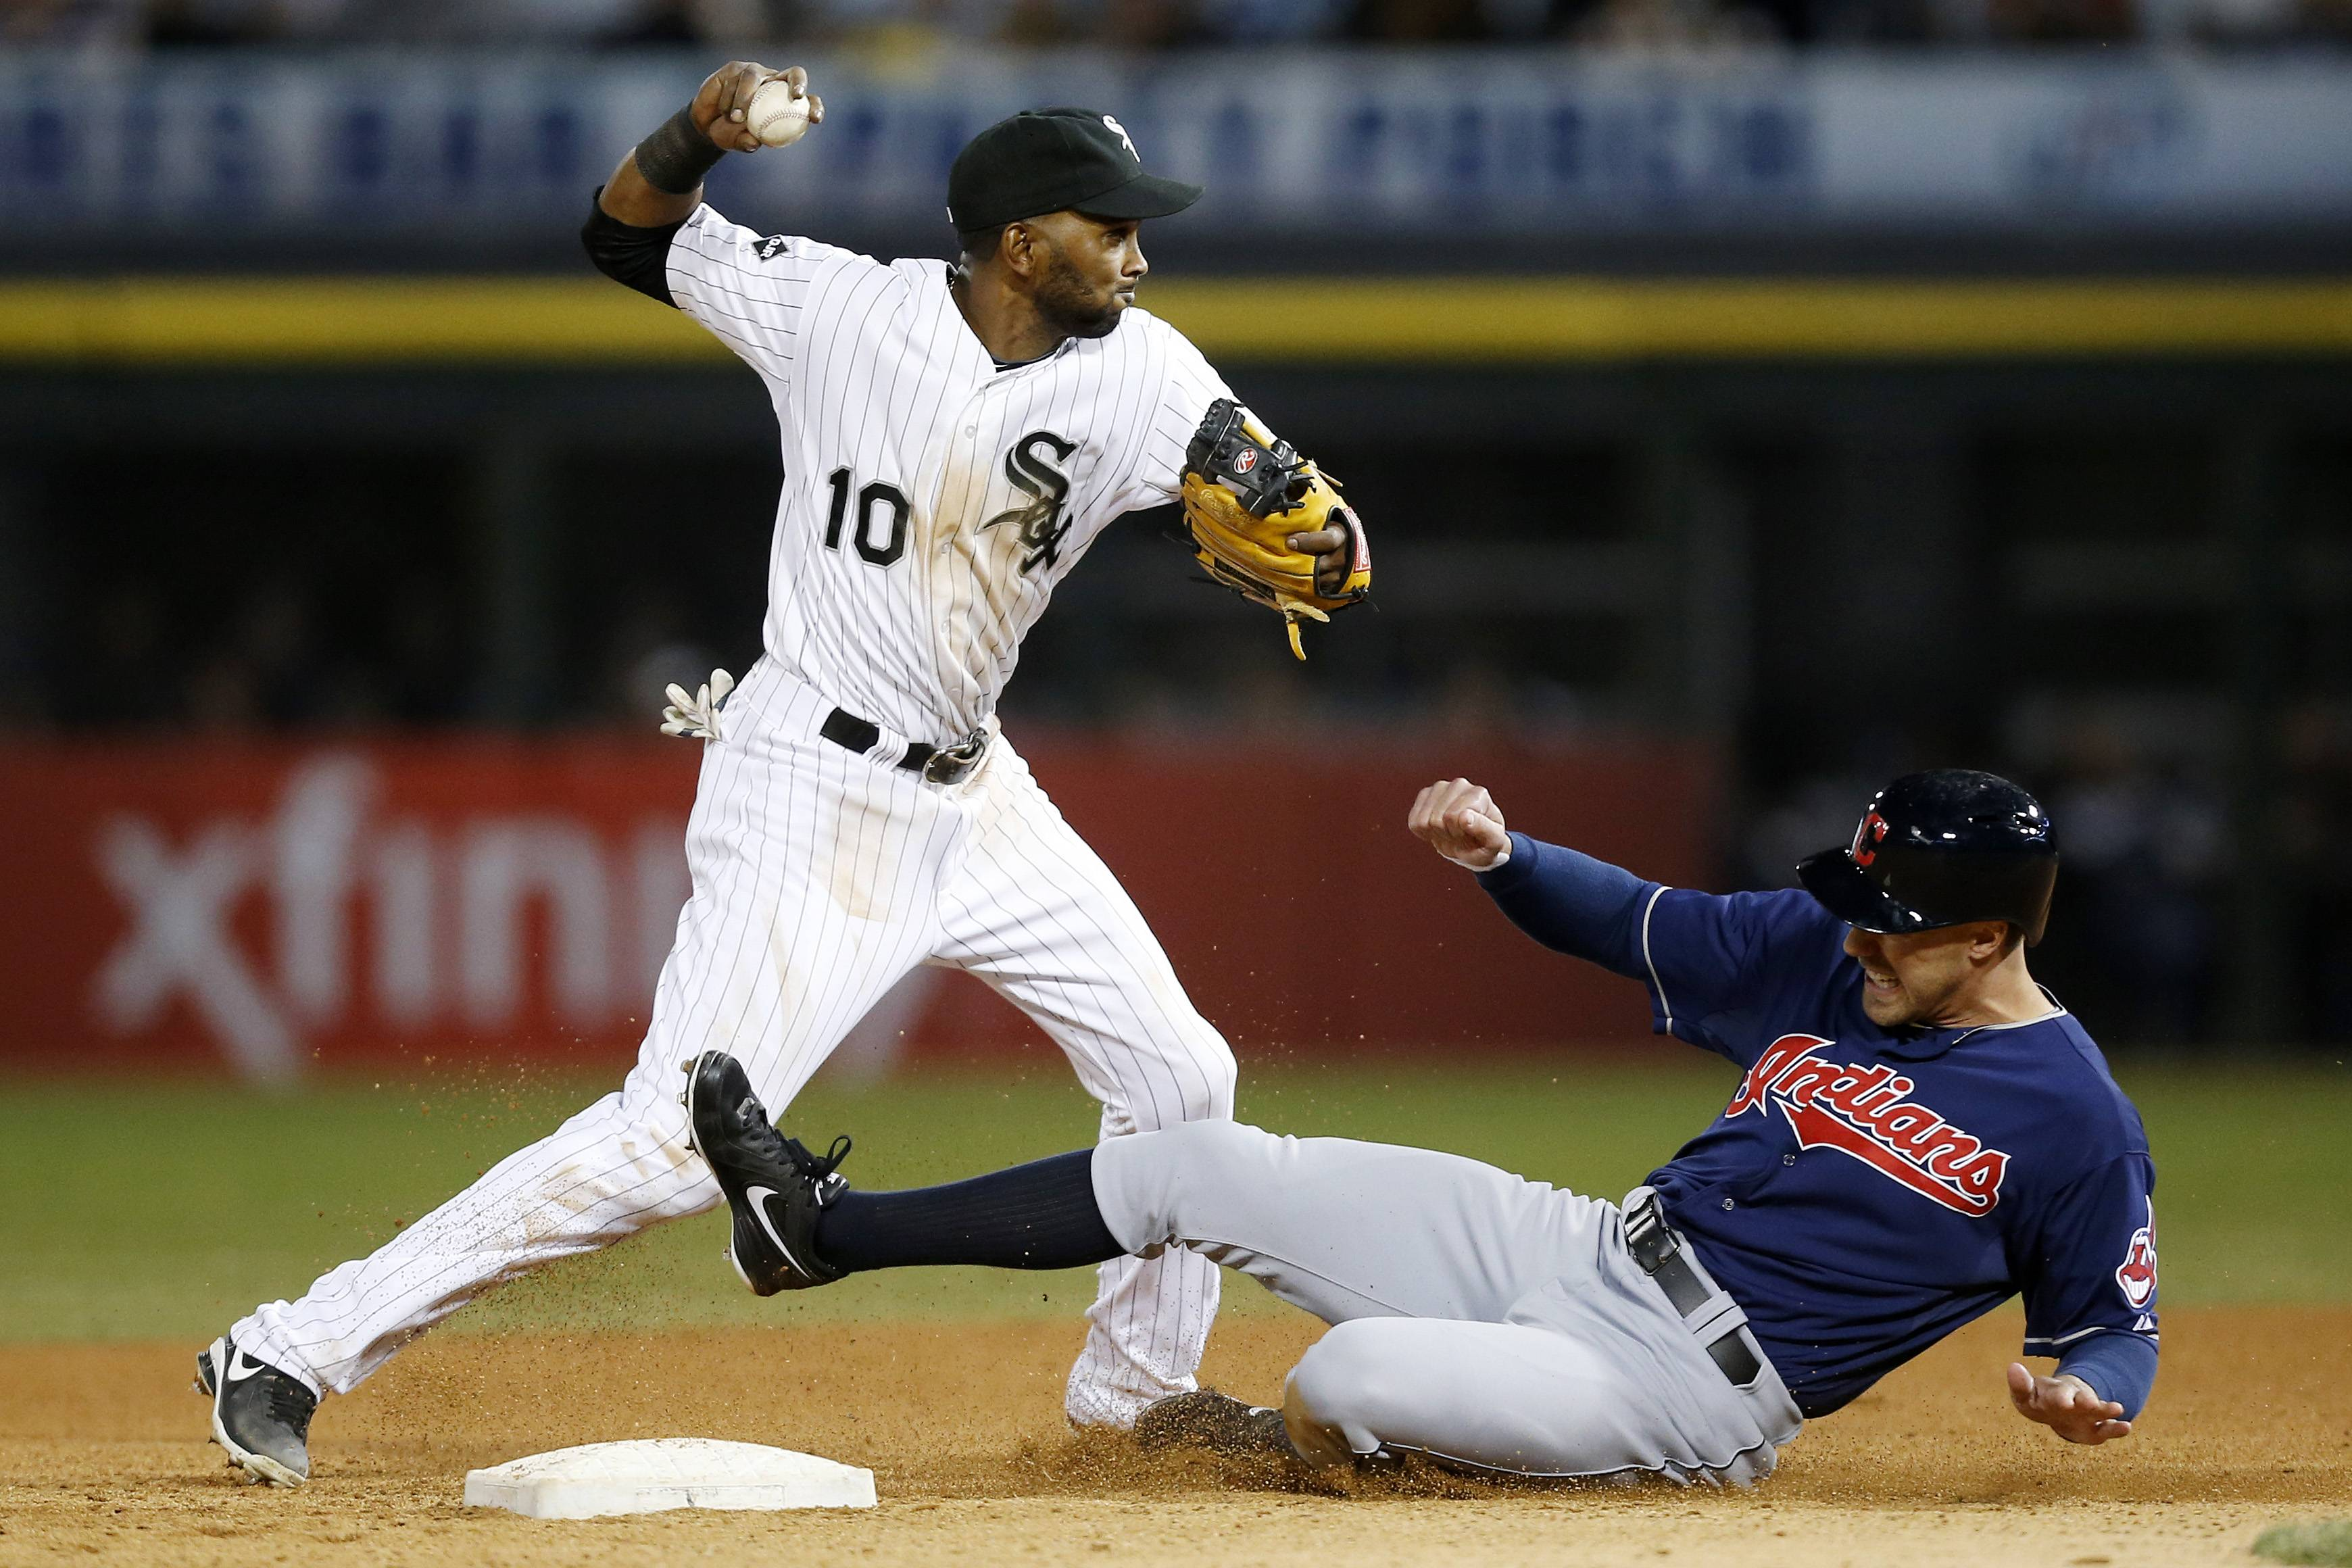 Chicago White Sox shortstop Alexei Ramirez forces out Cleveland Indians' David Murphy on a double play during the eighth inning of a baseball game on Friday, April 11, 2014, in Chicago. The White Sox won 9-6. (AP Photo/Andrew A. Nelles)